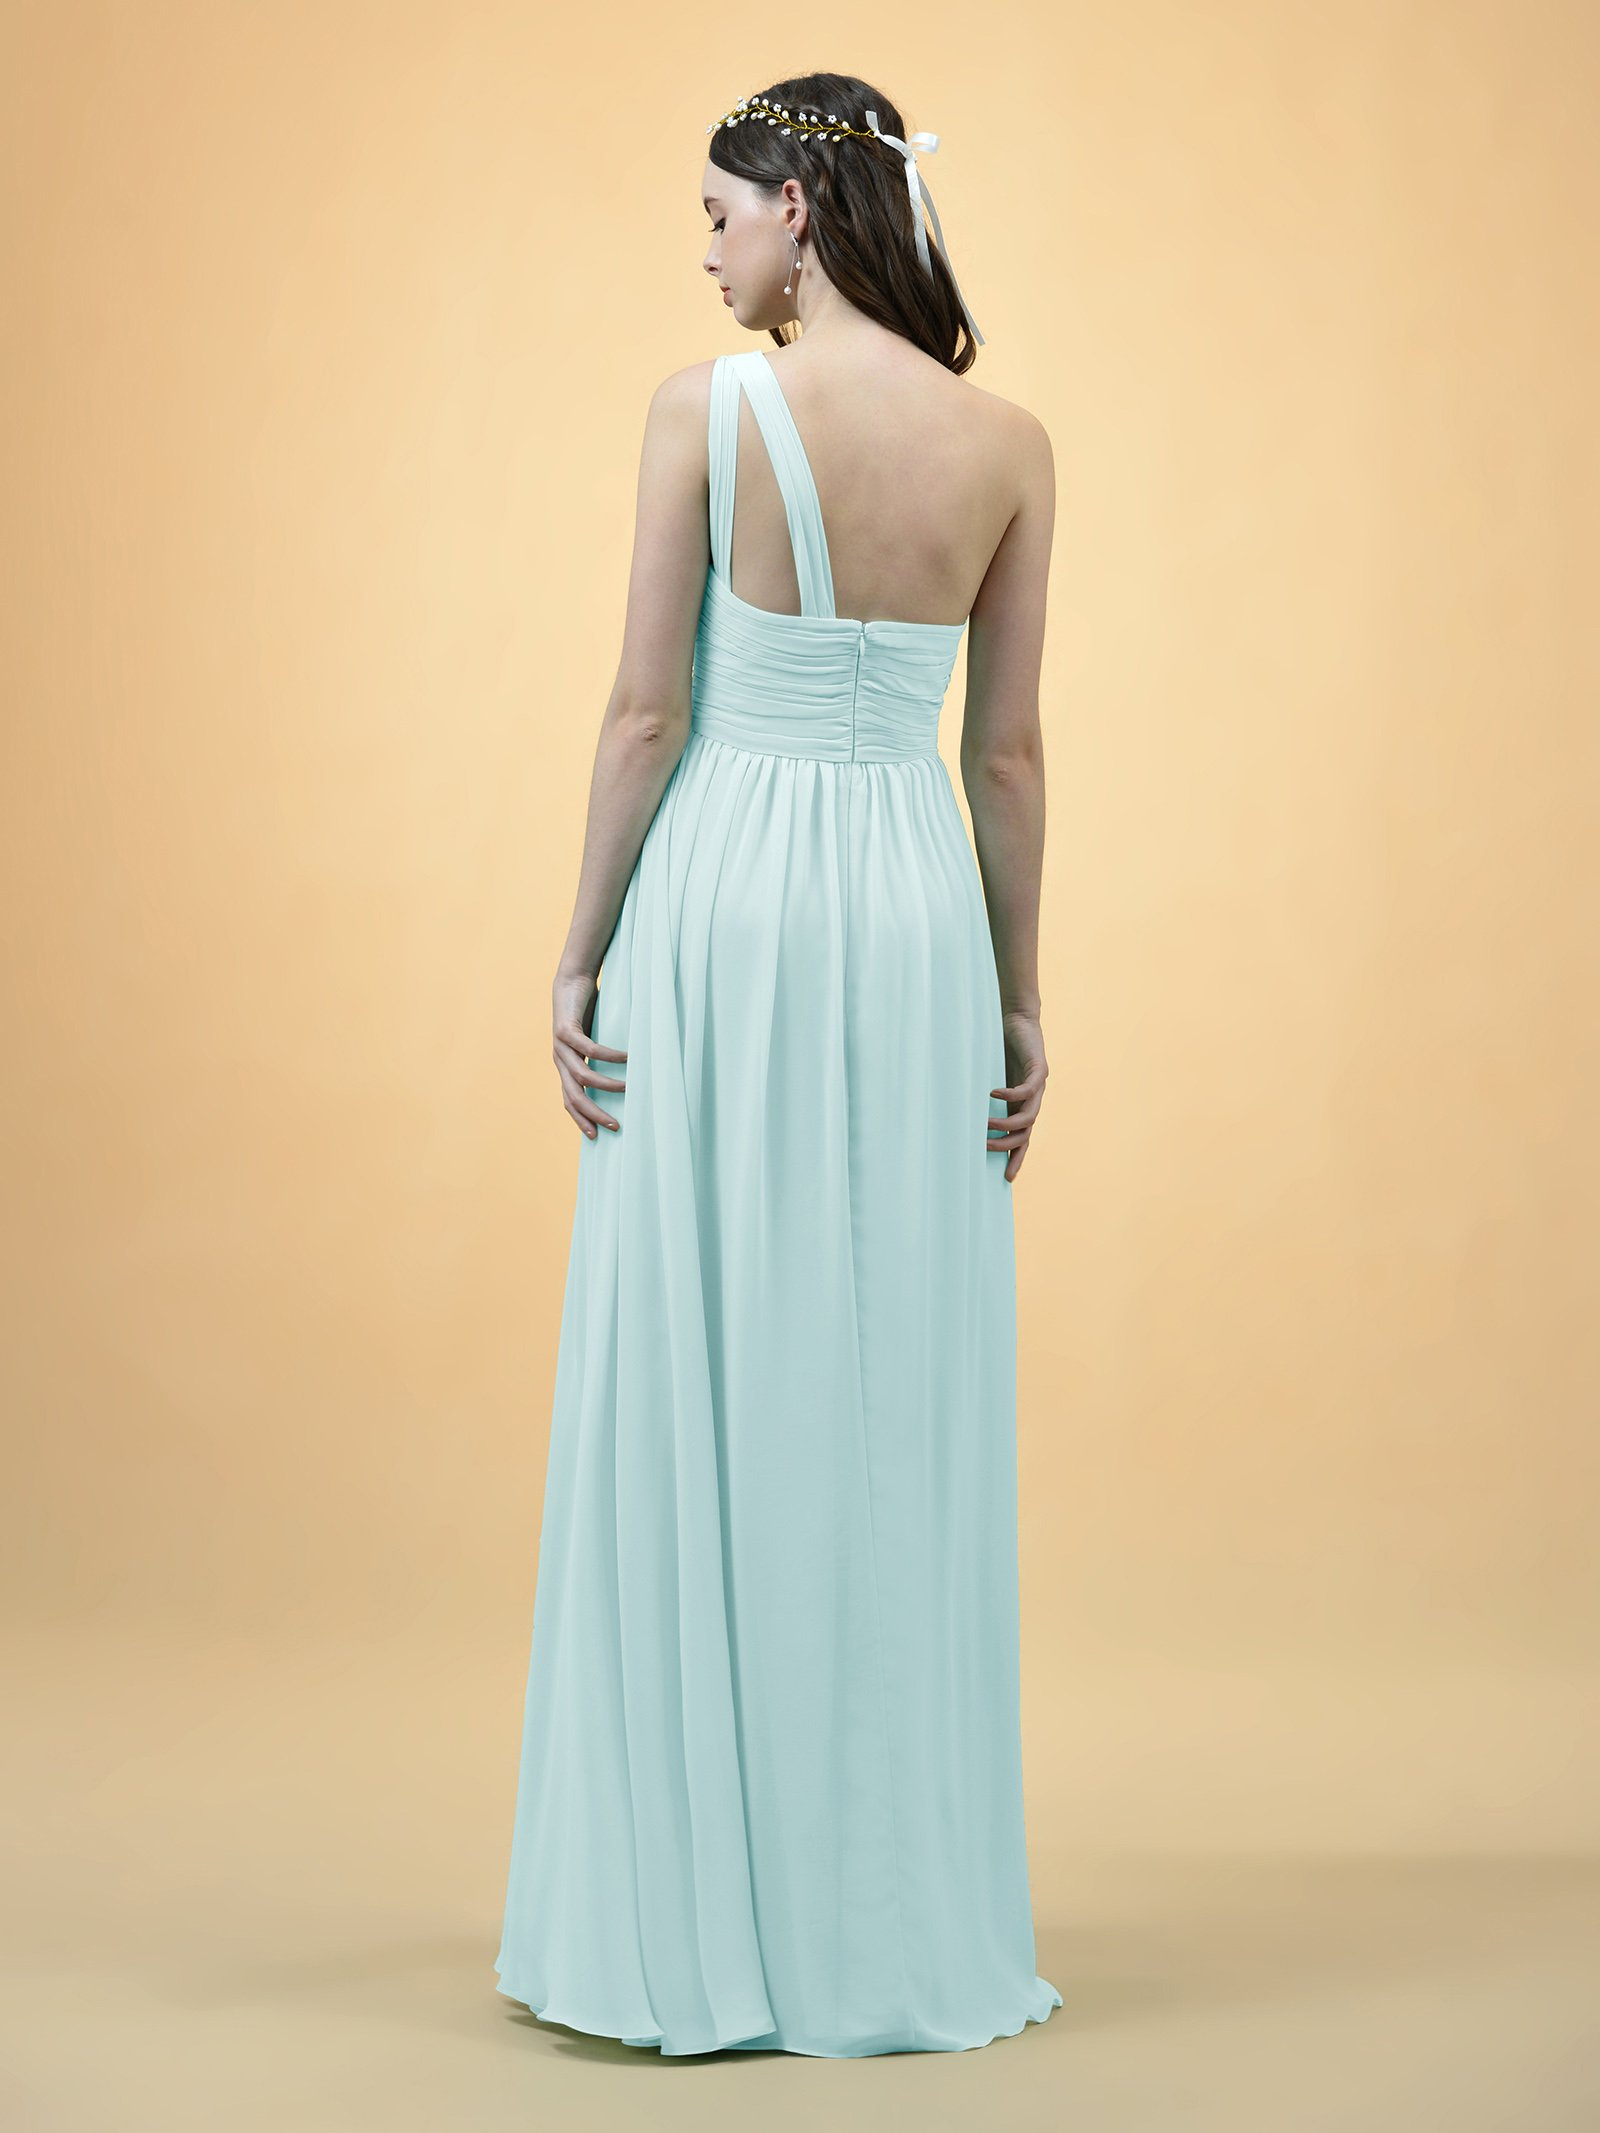 512797382 ... Dresses/Alicepub One Shoulder Bridesmaid Dress for Women Long Evening  Party Gown Maxi, Mint Green, US8. ; 